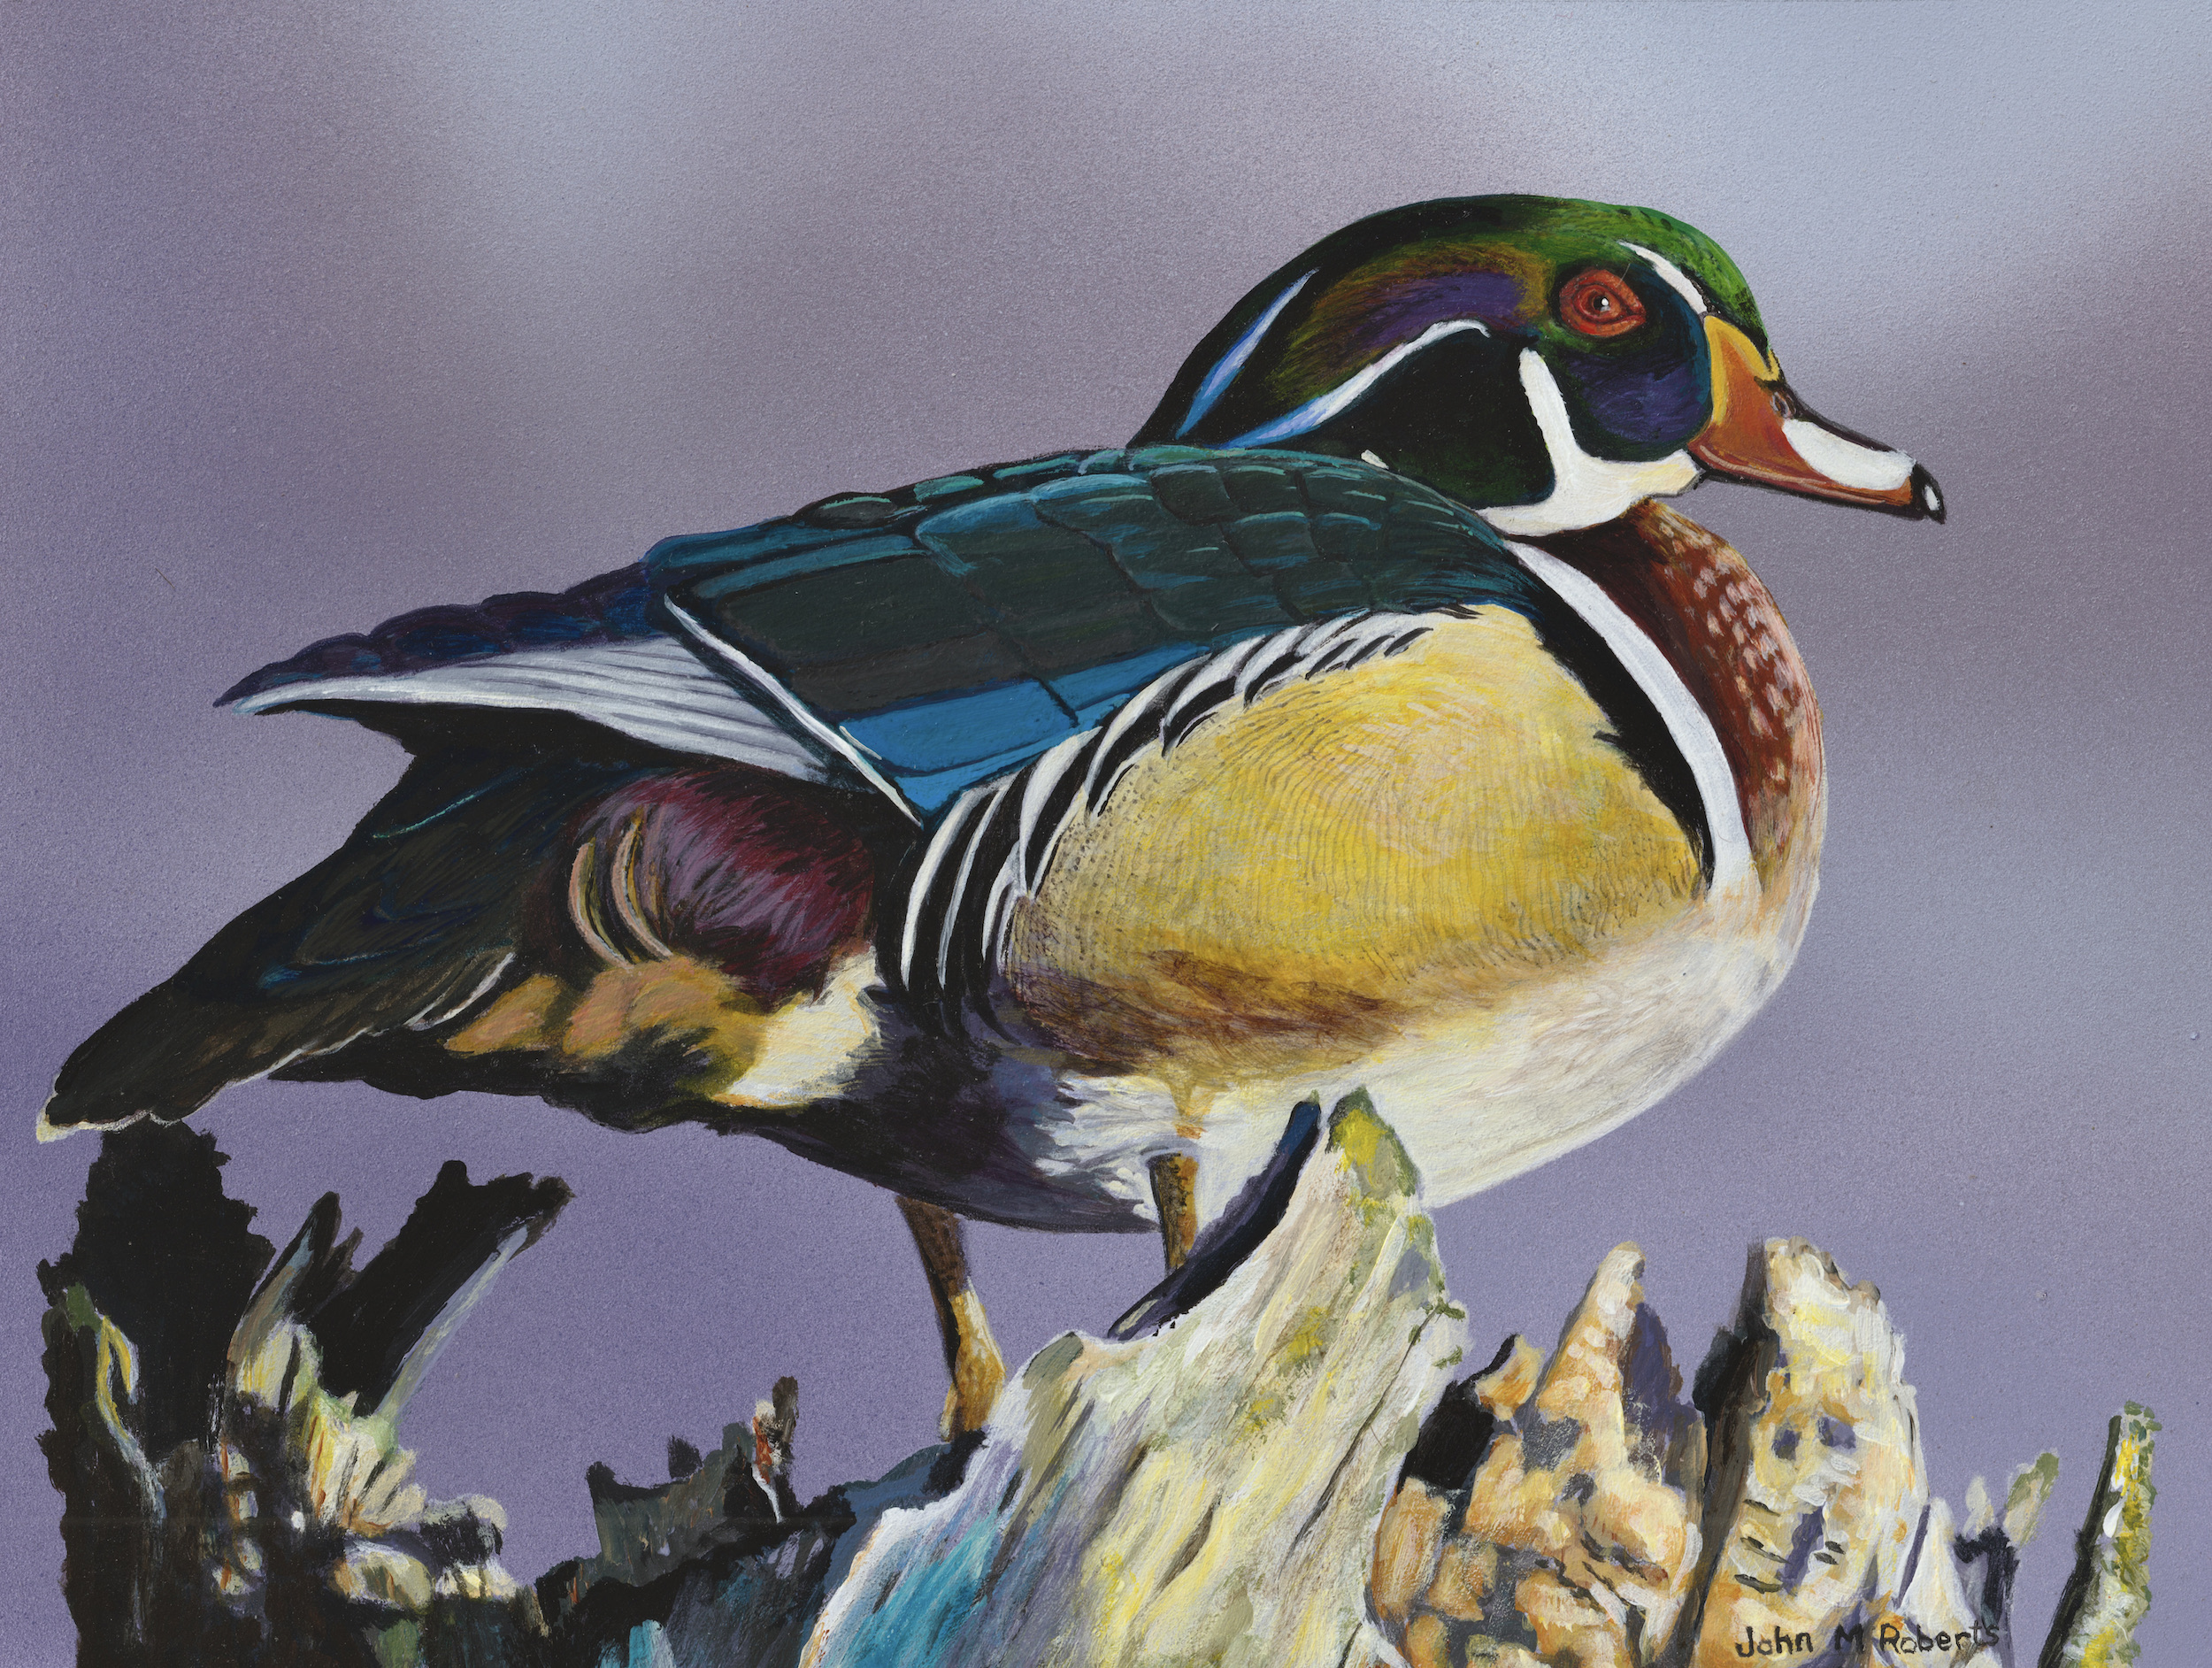 Michigan duck stamp continues to make its mark on waterfowl conservation